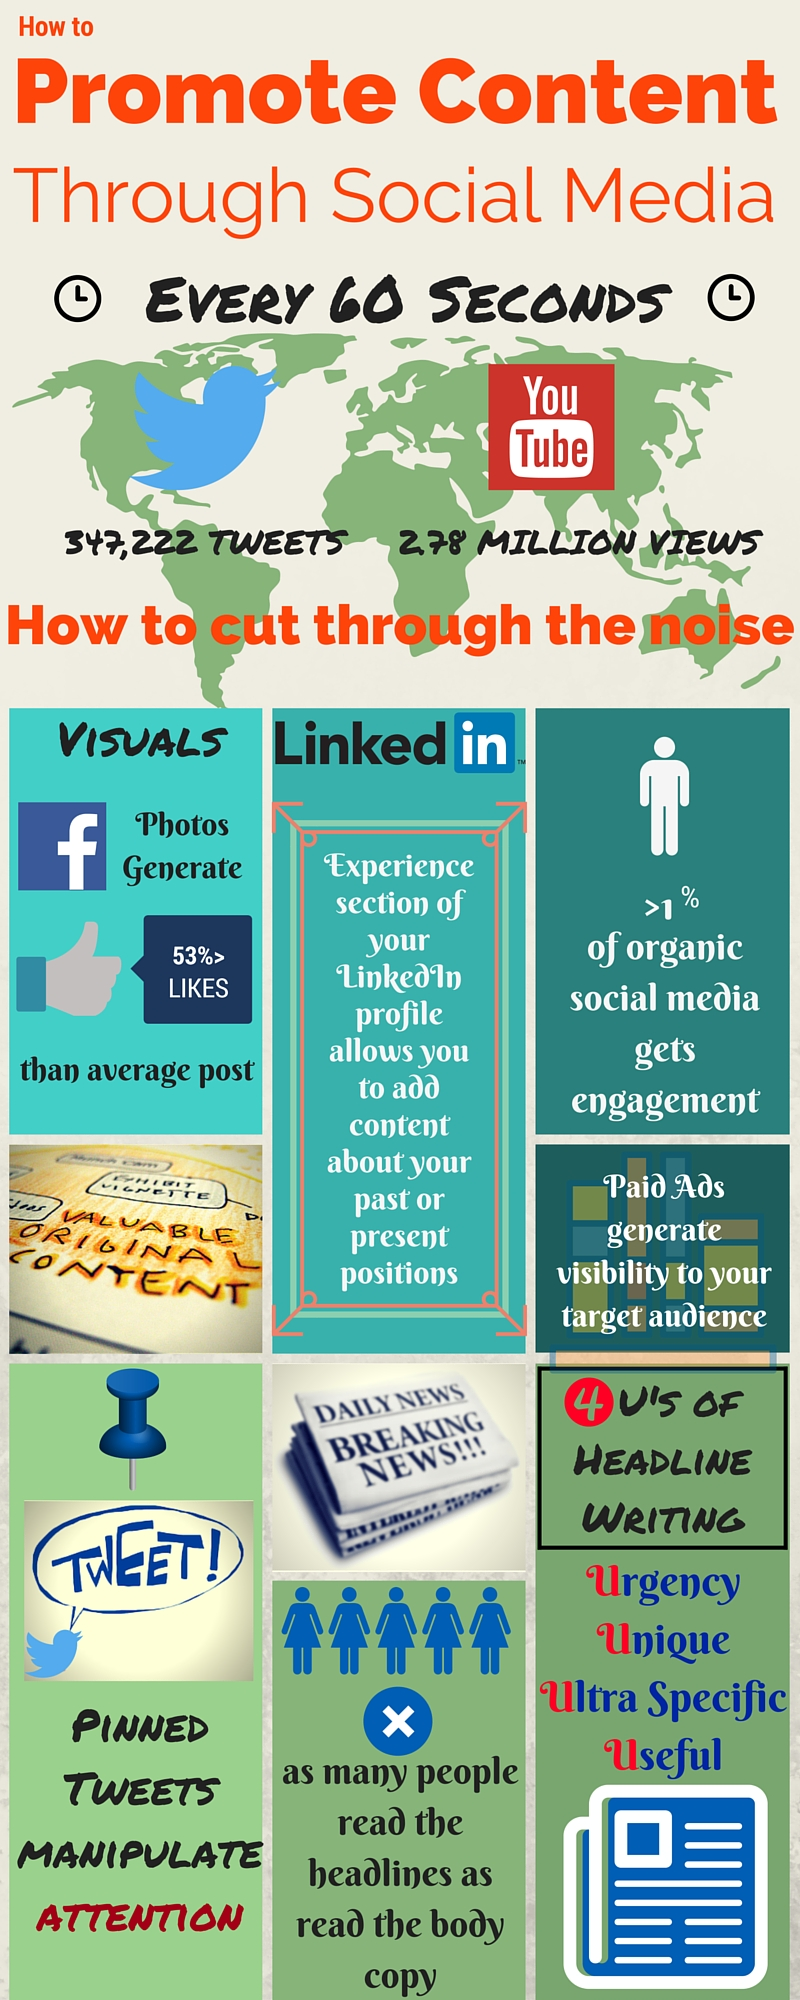 Promote content through social media